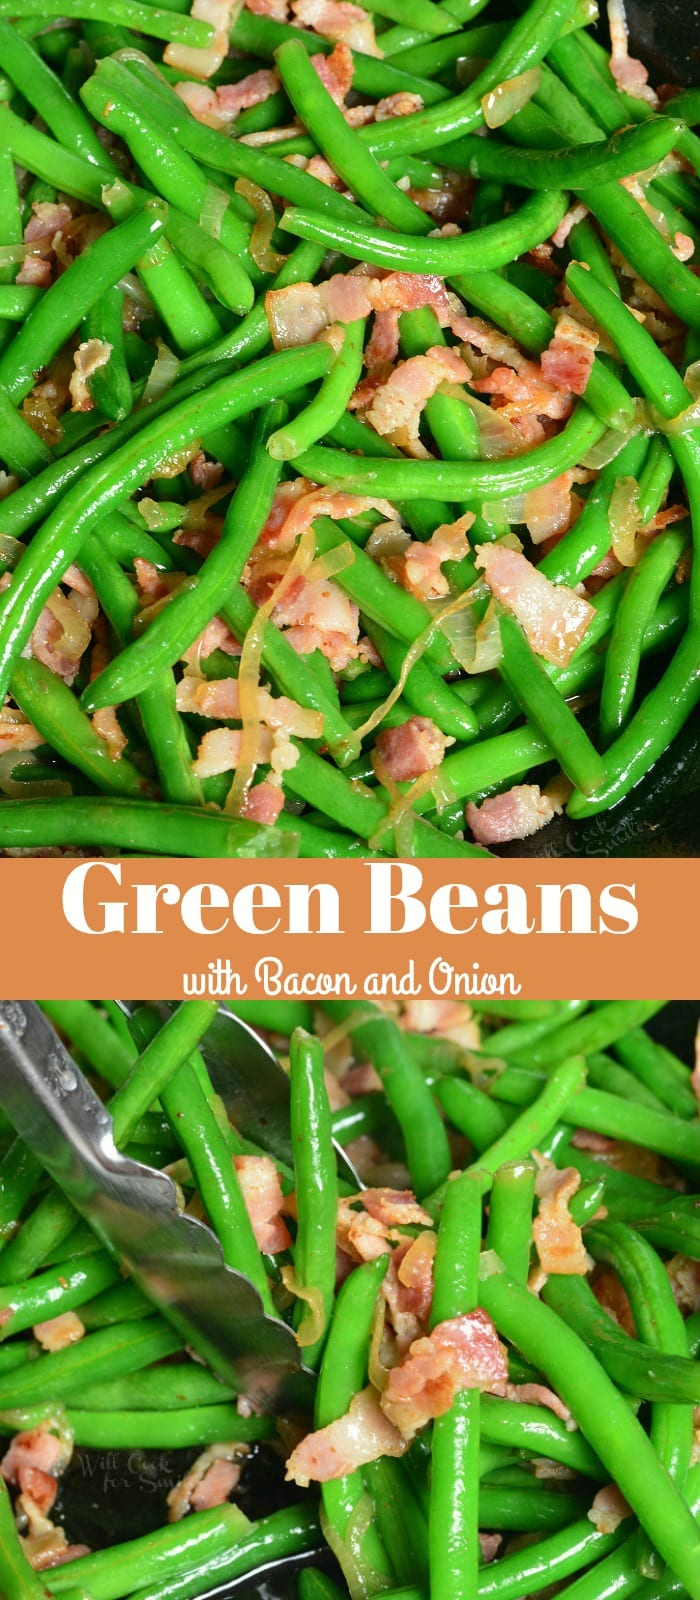 Green Beans with Bacon and Onion. Fresh green beans make a wonderfully easy side dish to any meal. These green beans are blanched and sauteed with bacon and onions. #sidedish #greenbeans #bacon #sides